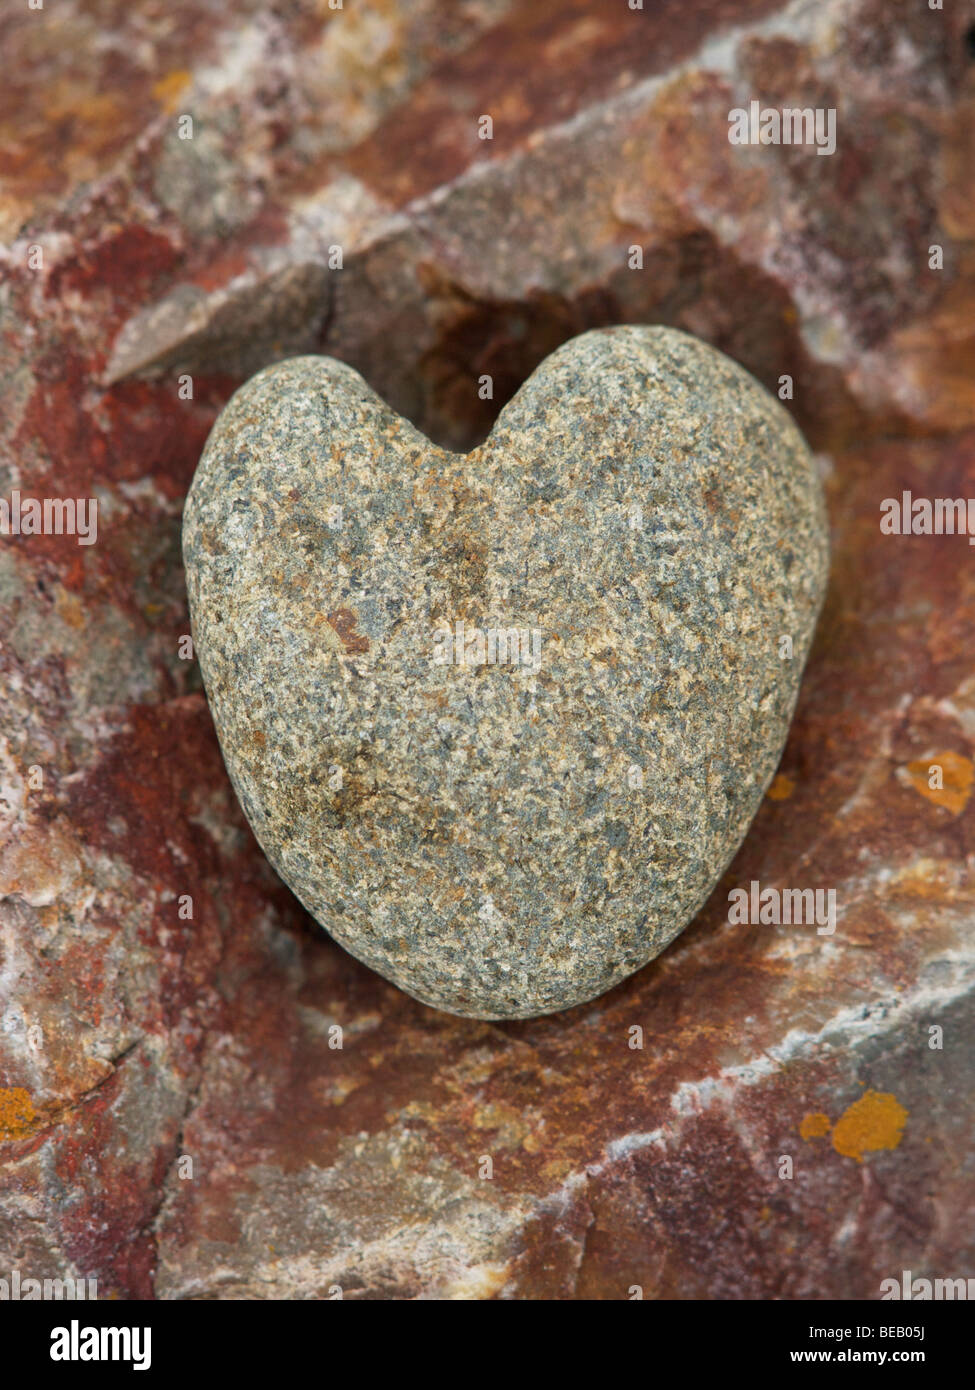 Heart of stone - Stock Image